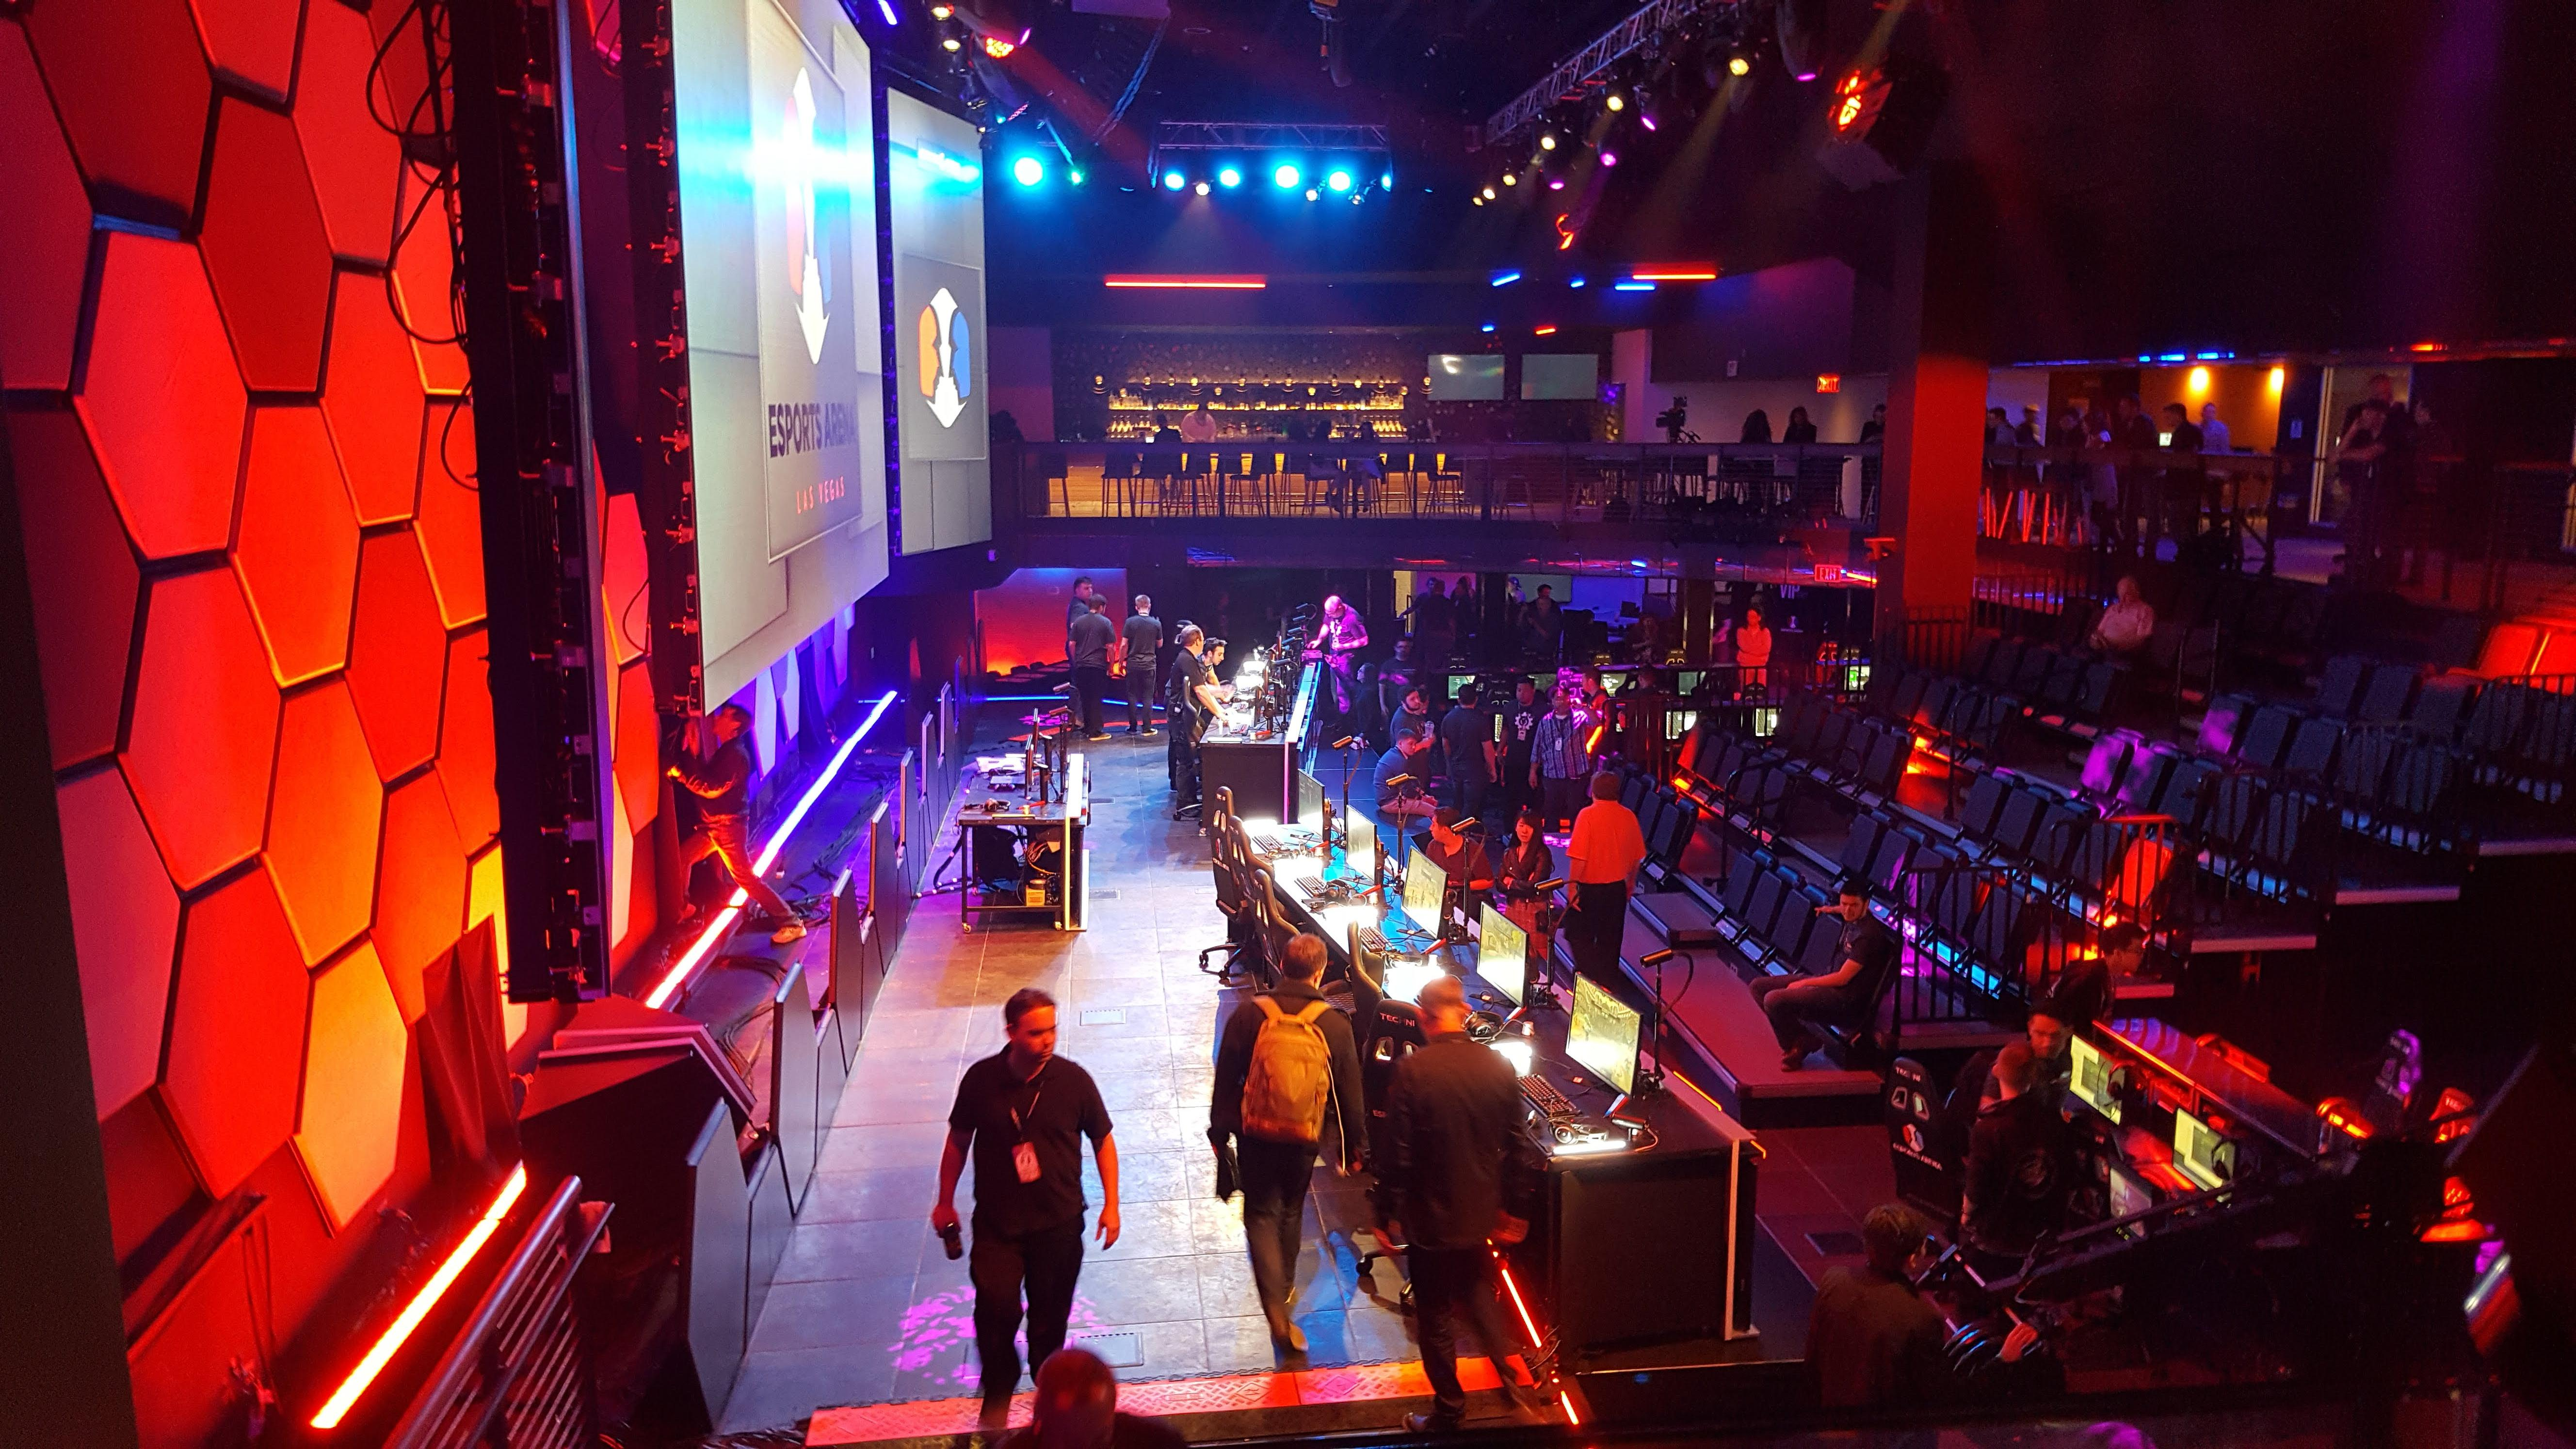 esports-arena-stage-mike-sorrentino-cnet